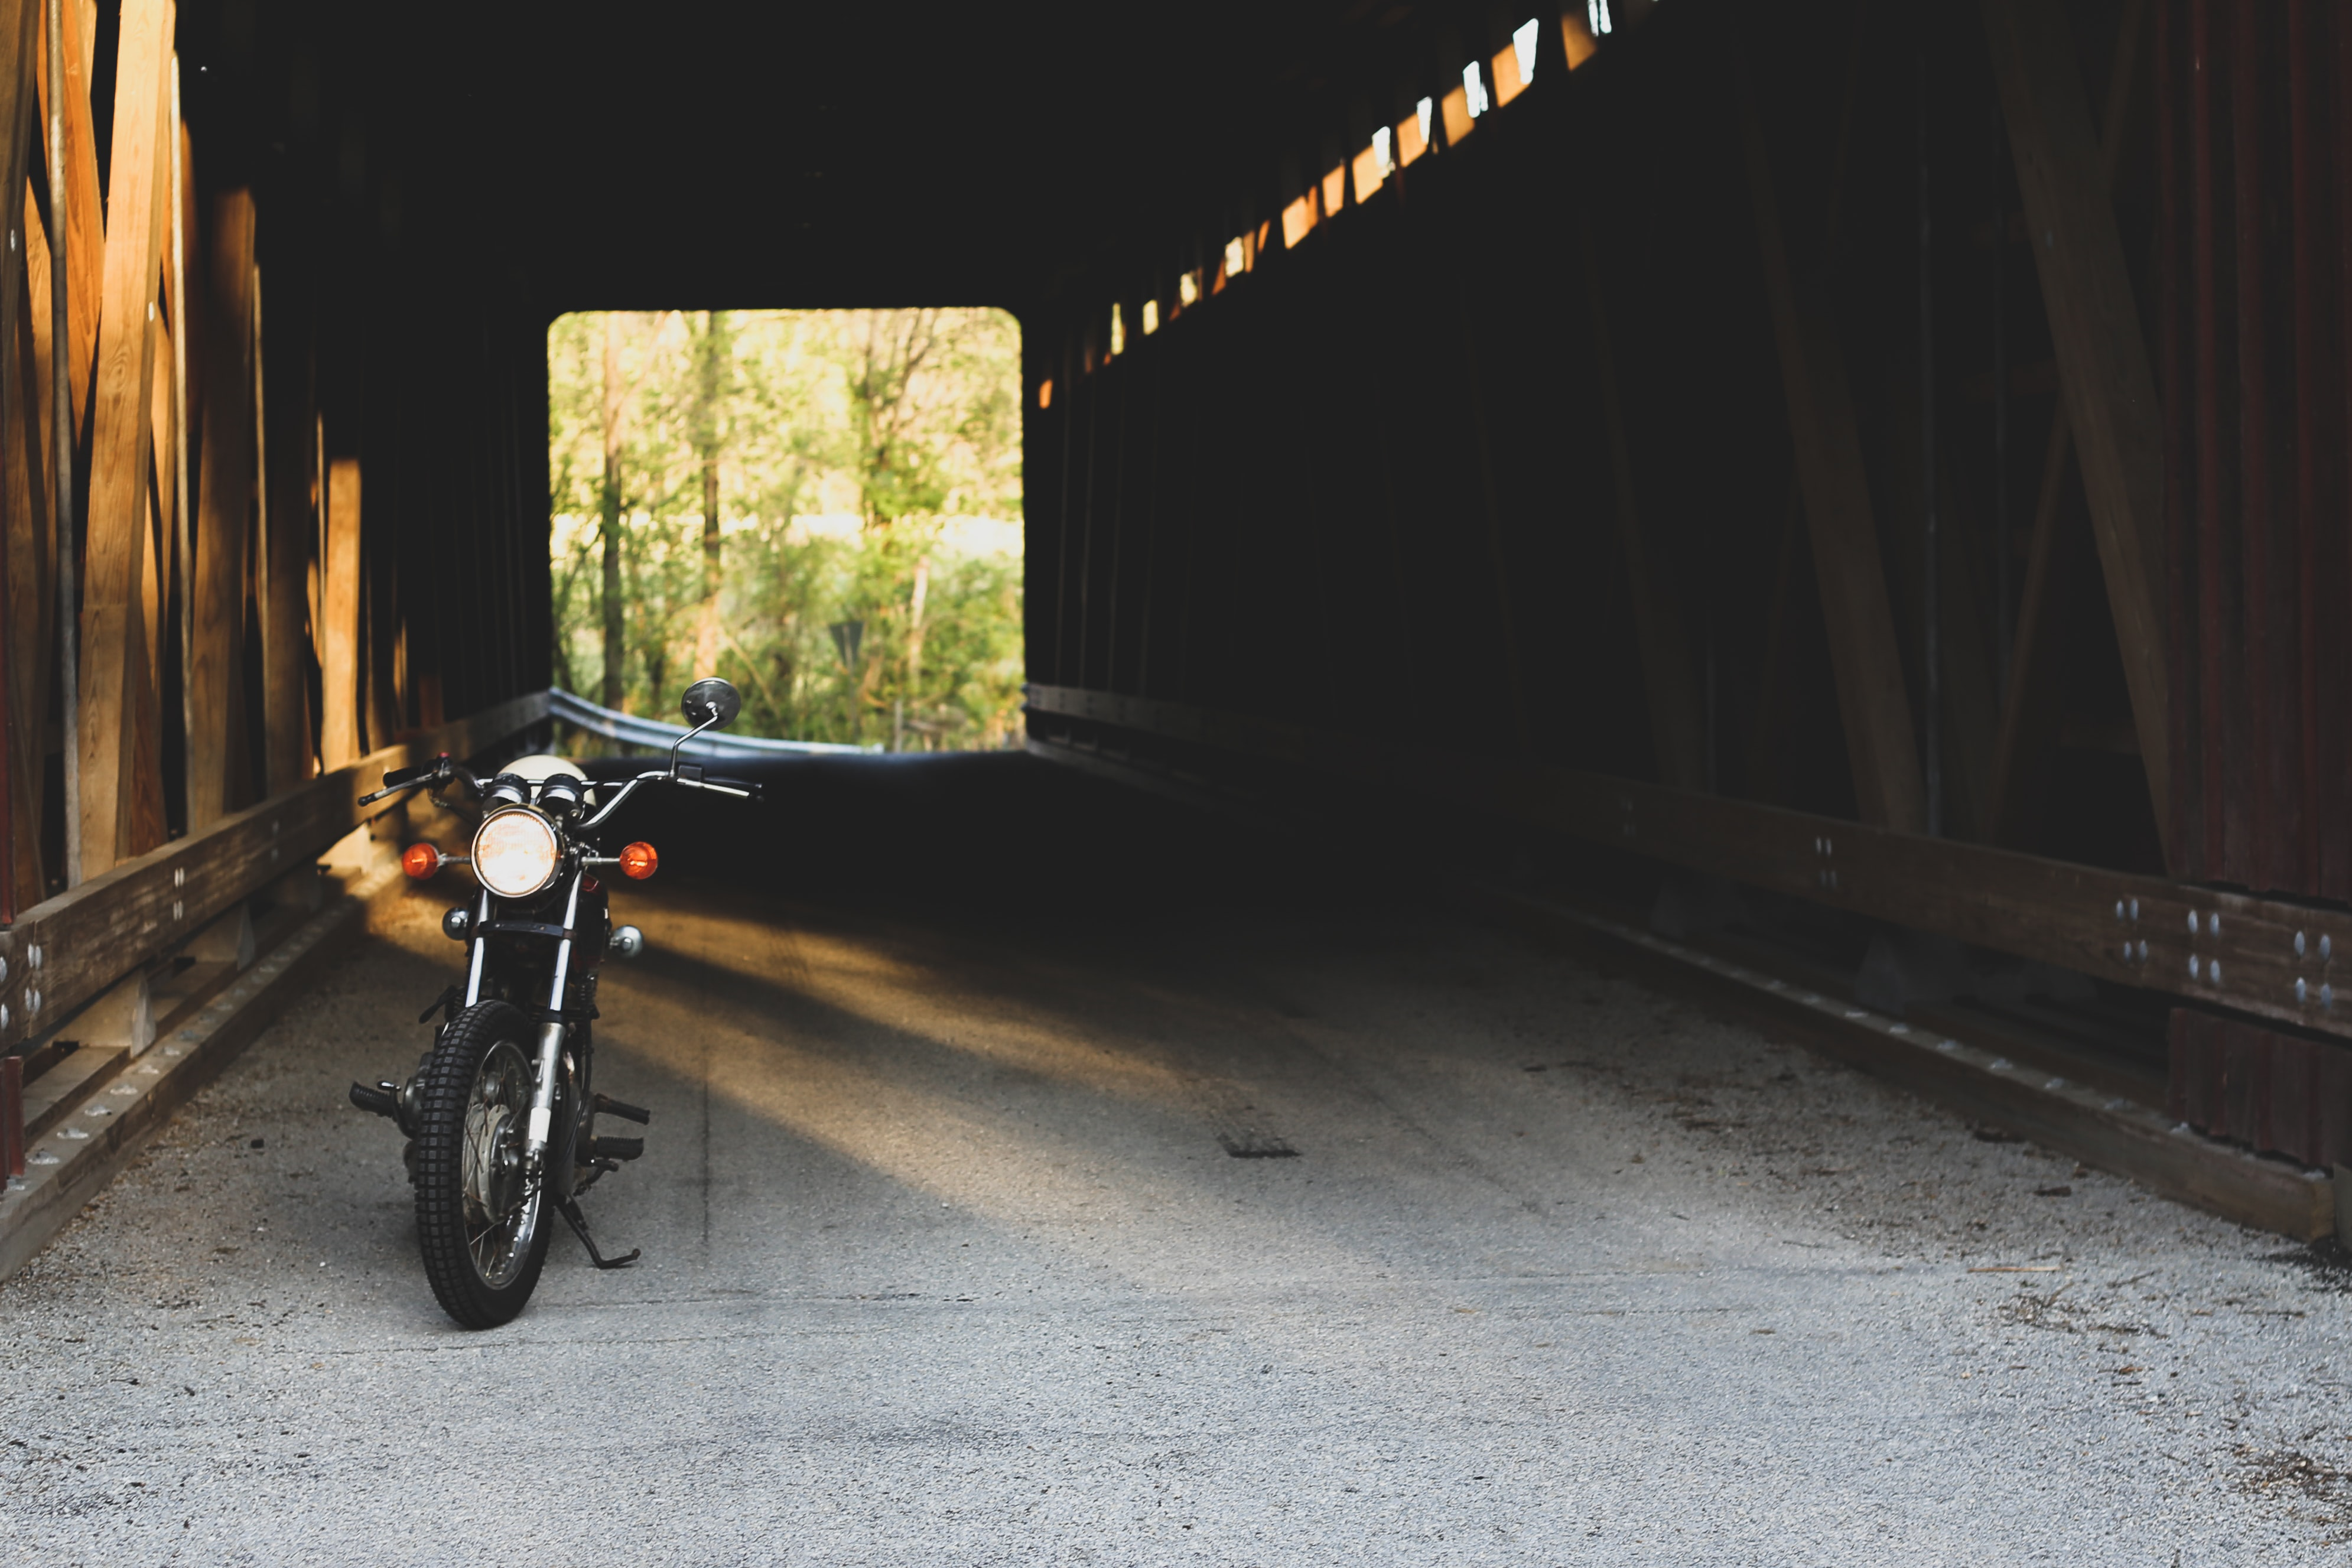 black motorcycle parking inside the tunnel